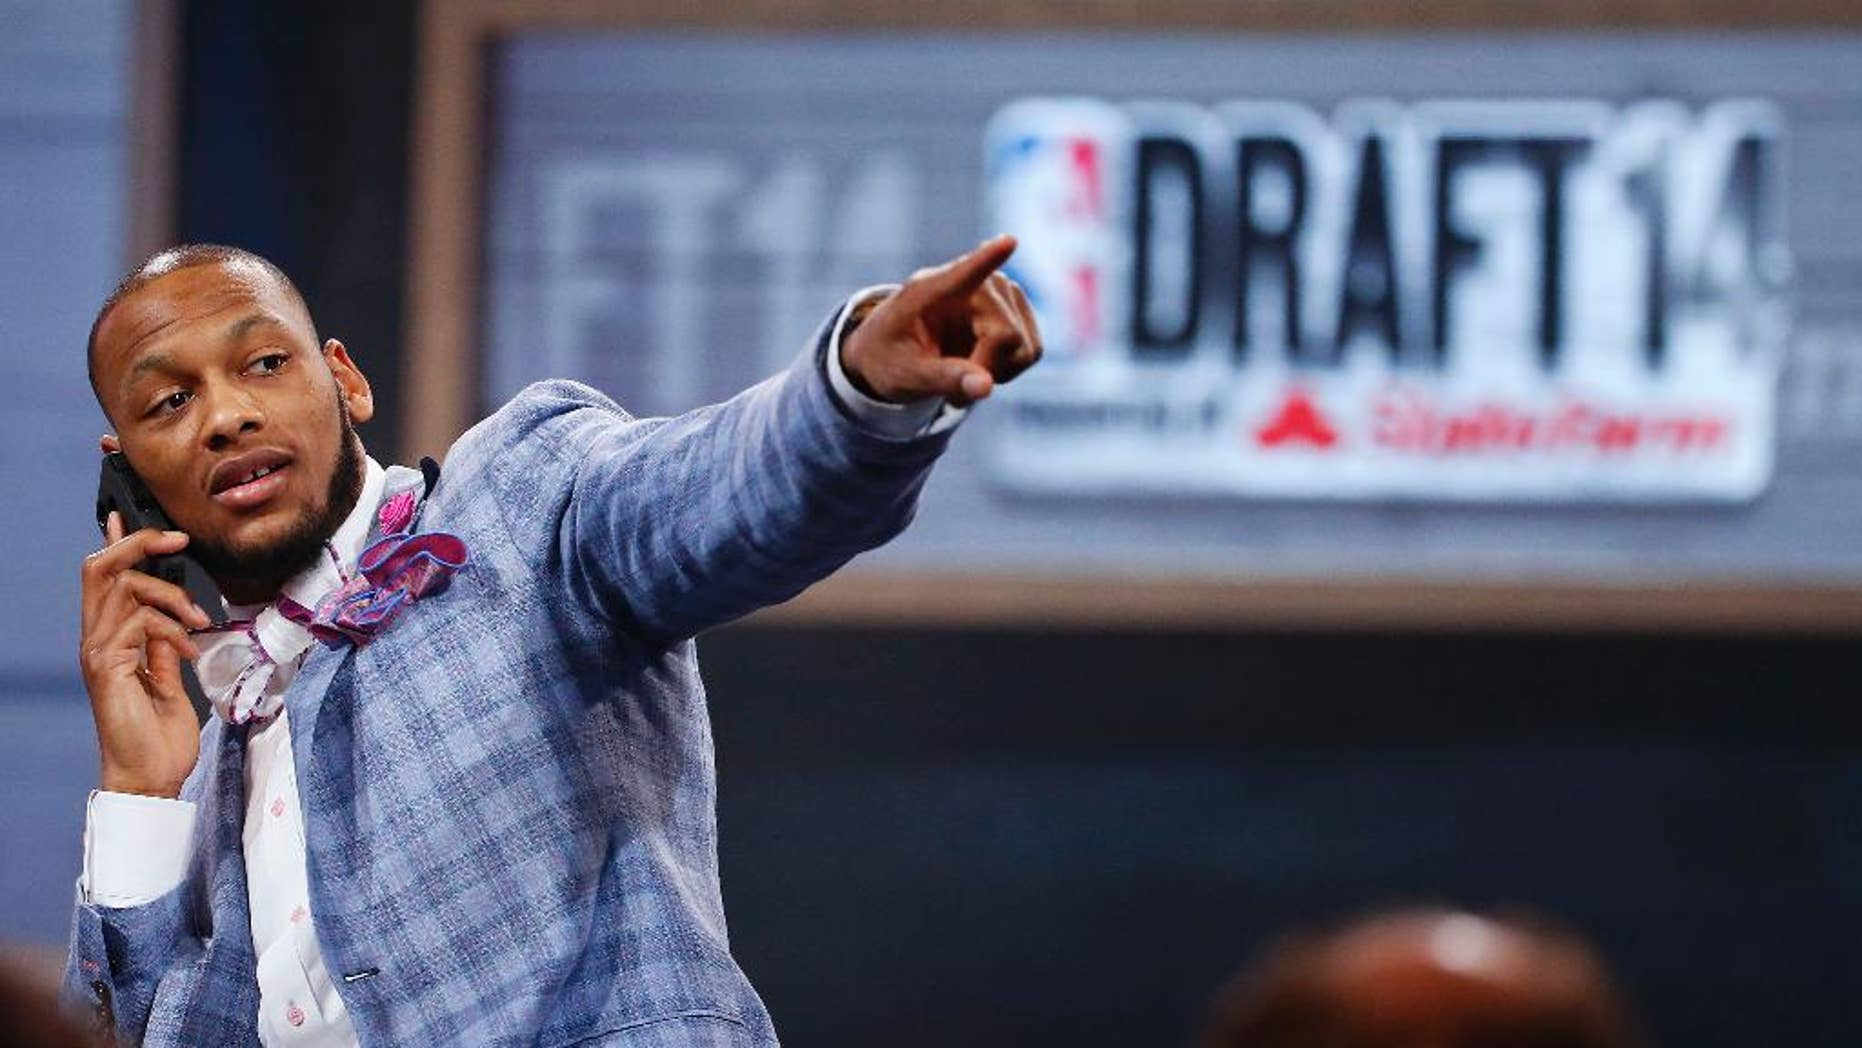 NBA draft prospect Adreian Payne of Michigan State, points to fans before the start of  the 2014 NBA draft, Thursday, June 26, 2014, in New York. (AP Photo/Jason DeCrow)